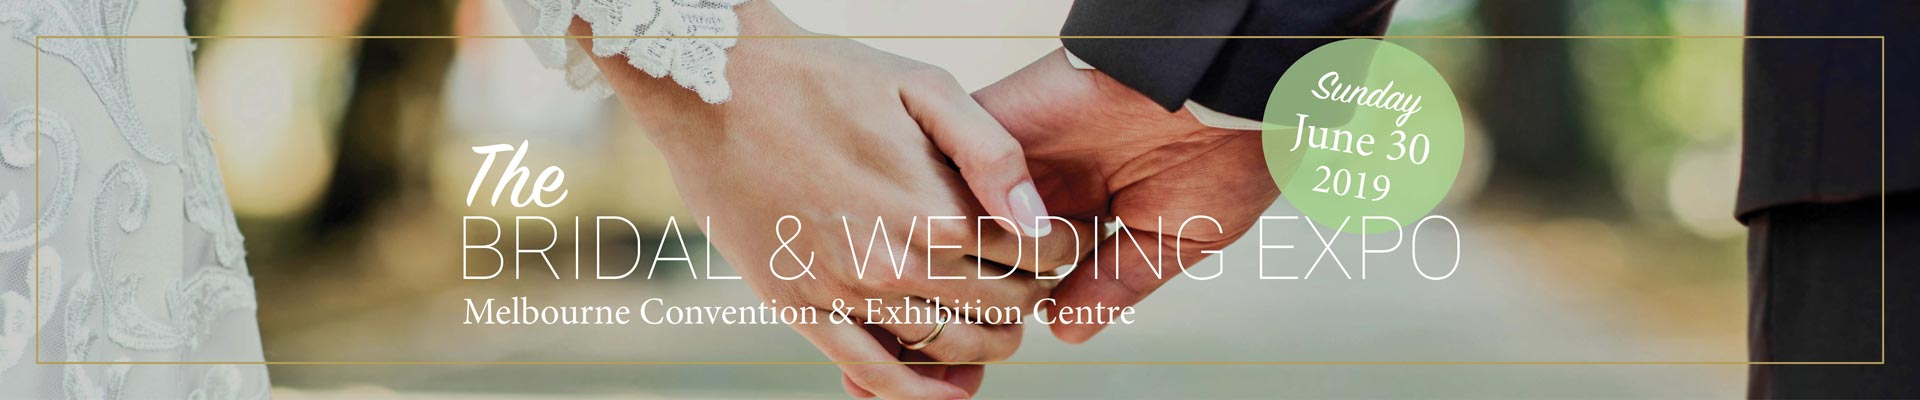 Melbourne Bridal and Wedding Expo